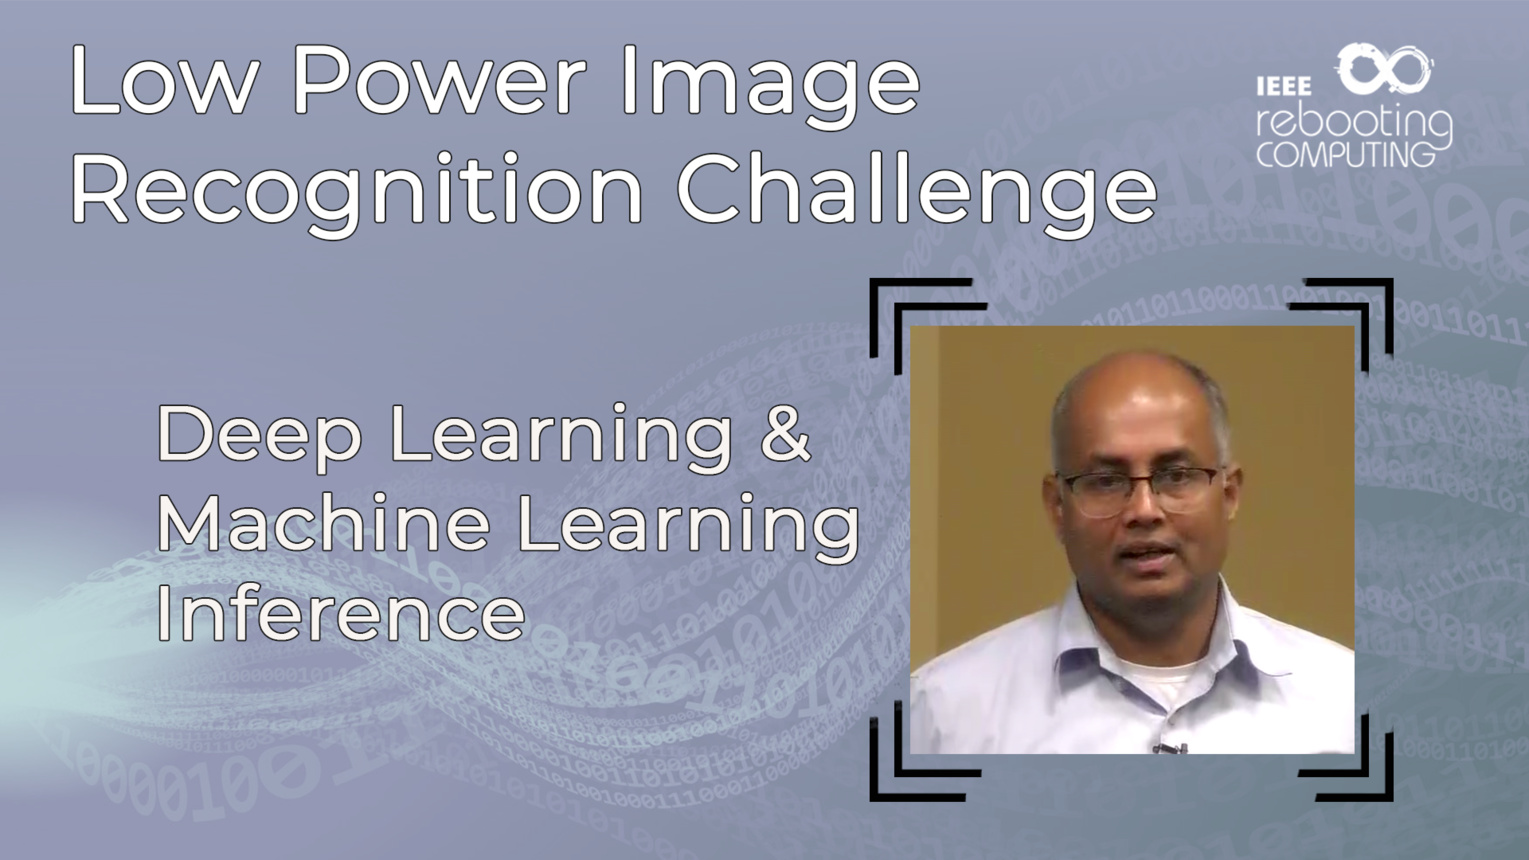 Deep Learning & Machine Learning Inference - Ashish Sirasao - LPIRC 2018